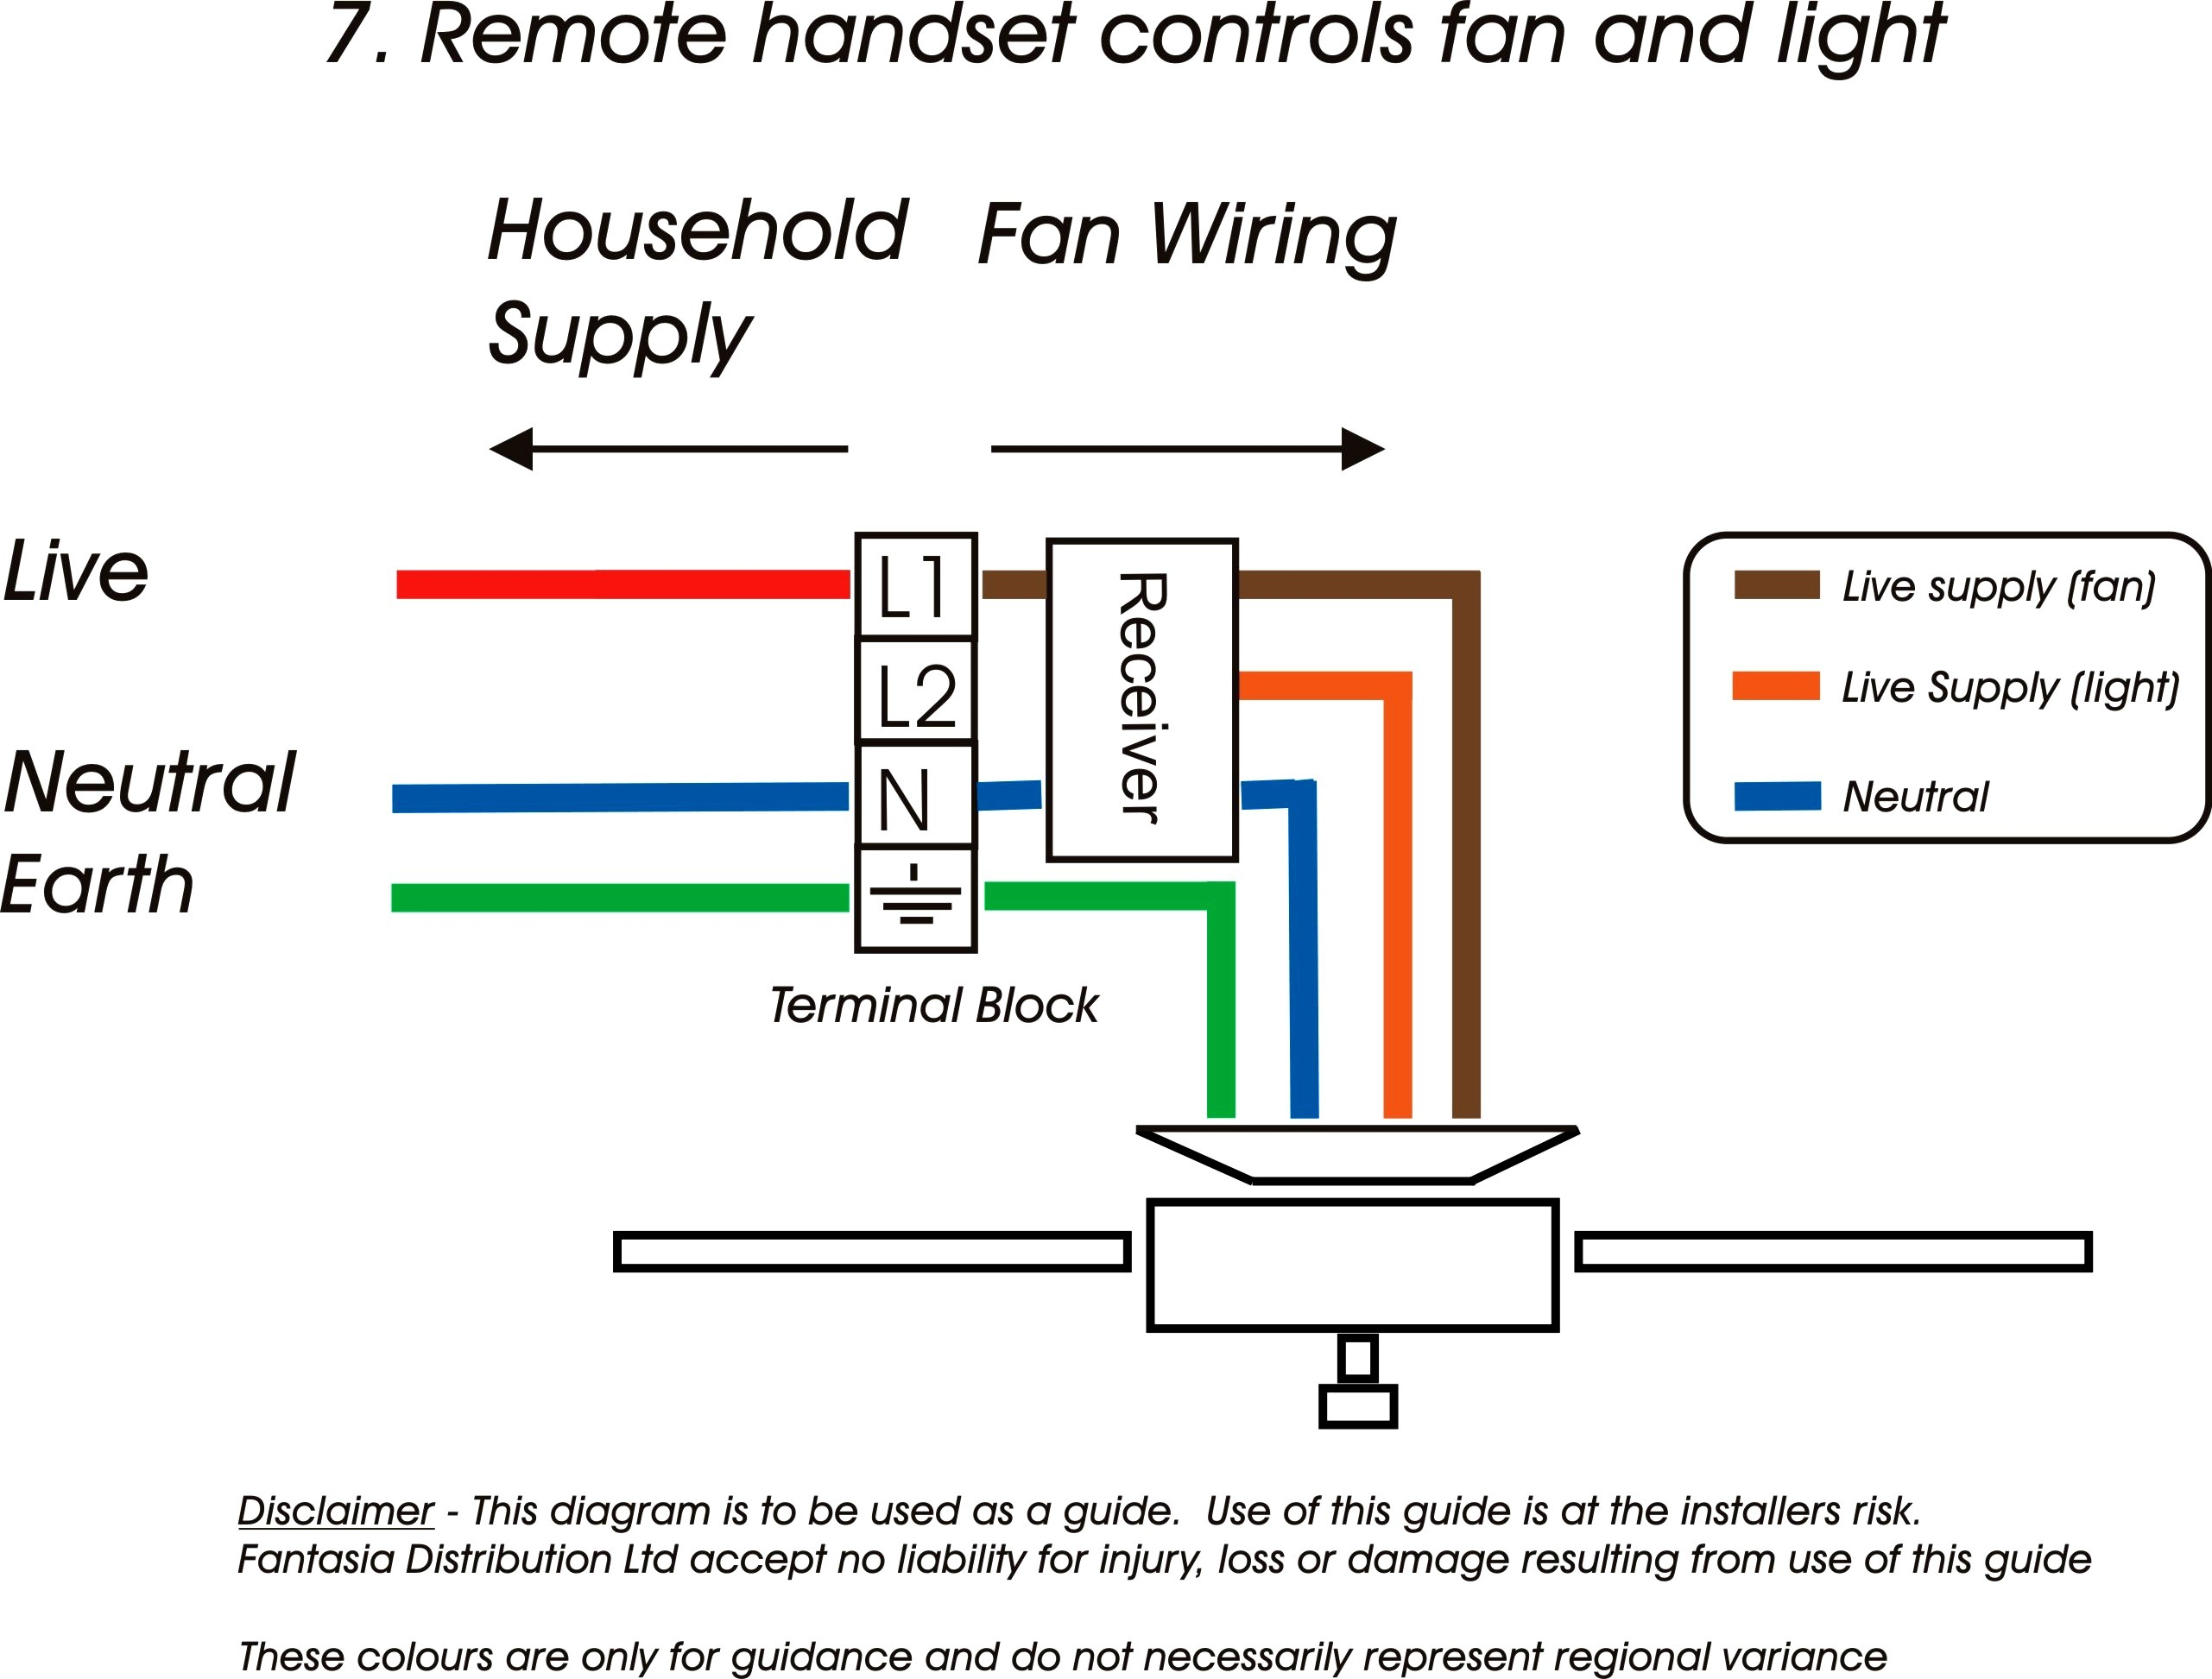 westinghouse ceiling fan wiring diagram gallery wiring diagram sample rh faceitsalon com 3 Speed Fan Wiring Diagrams Cooling Fan Relay Wiring Diagram